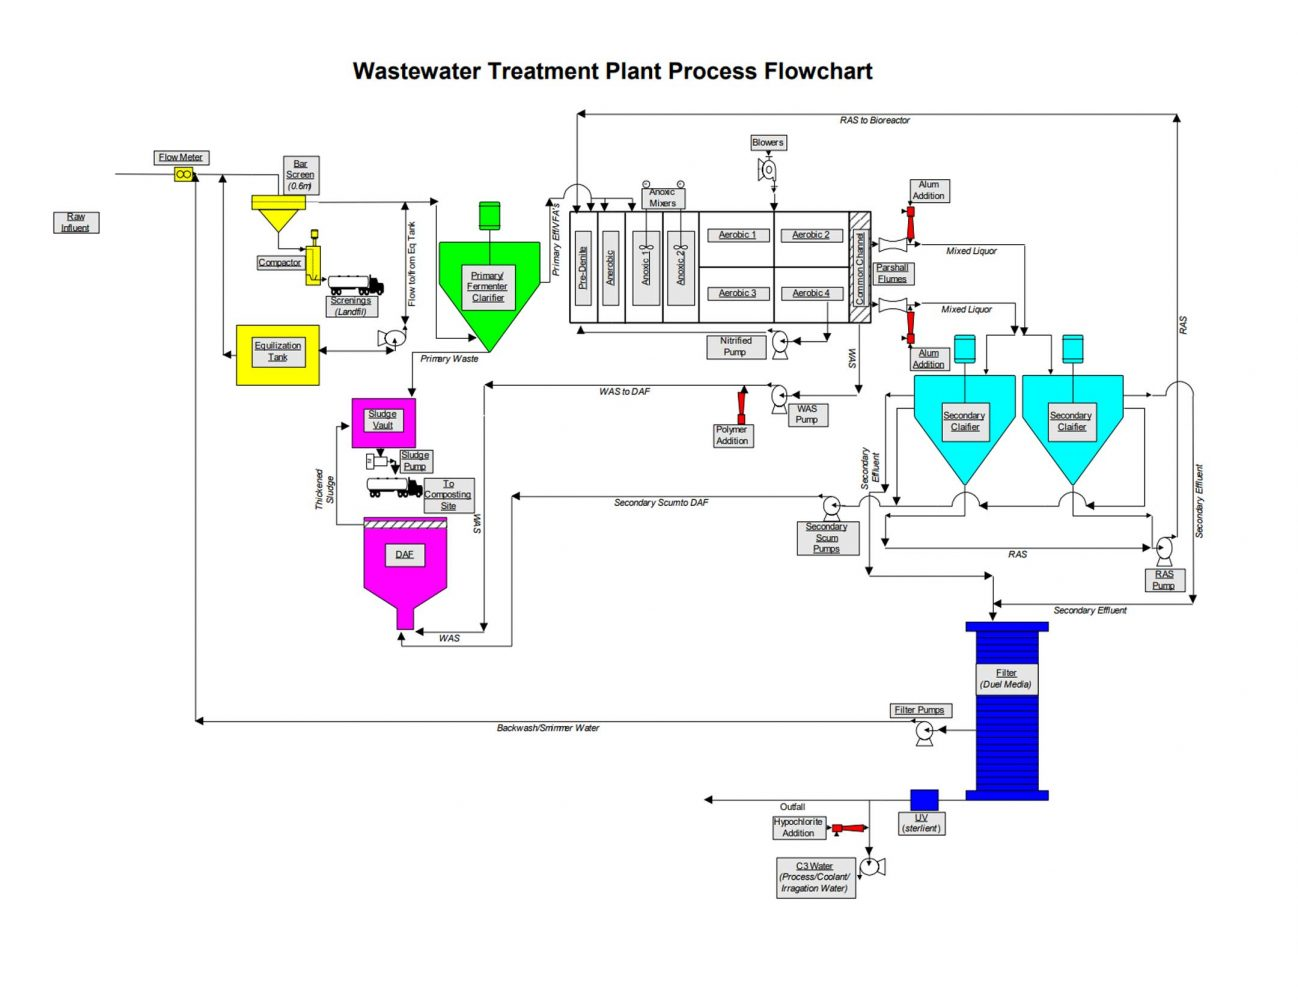 Wastewater Treatment Plant Process Flow Chart